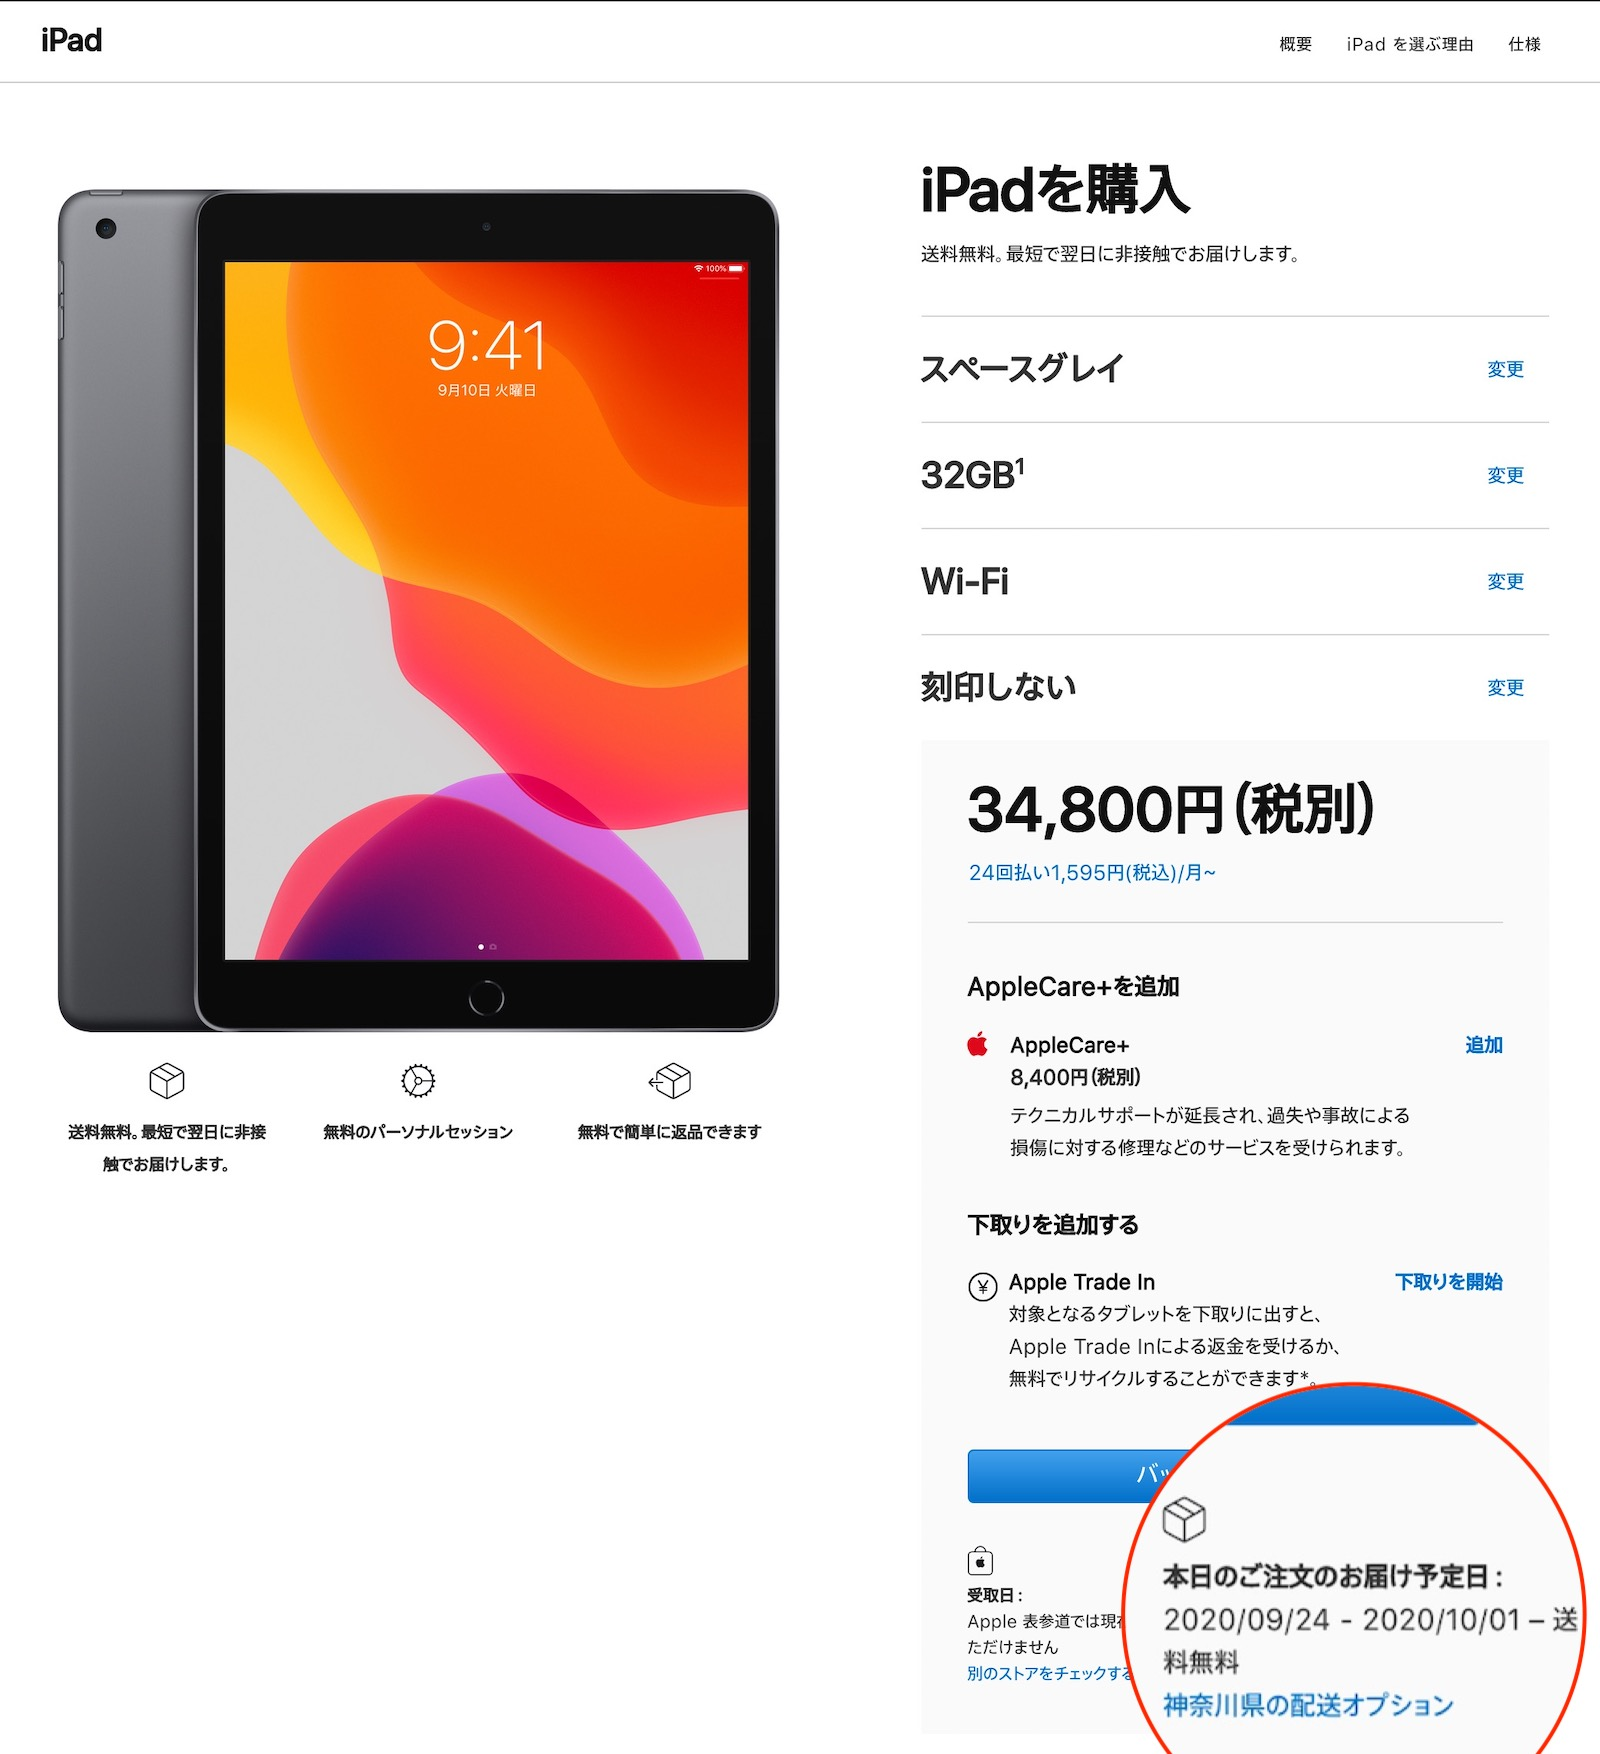 Ipad shipping date is slipping